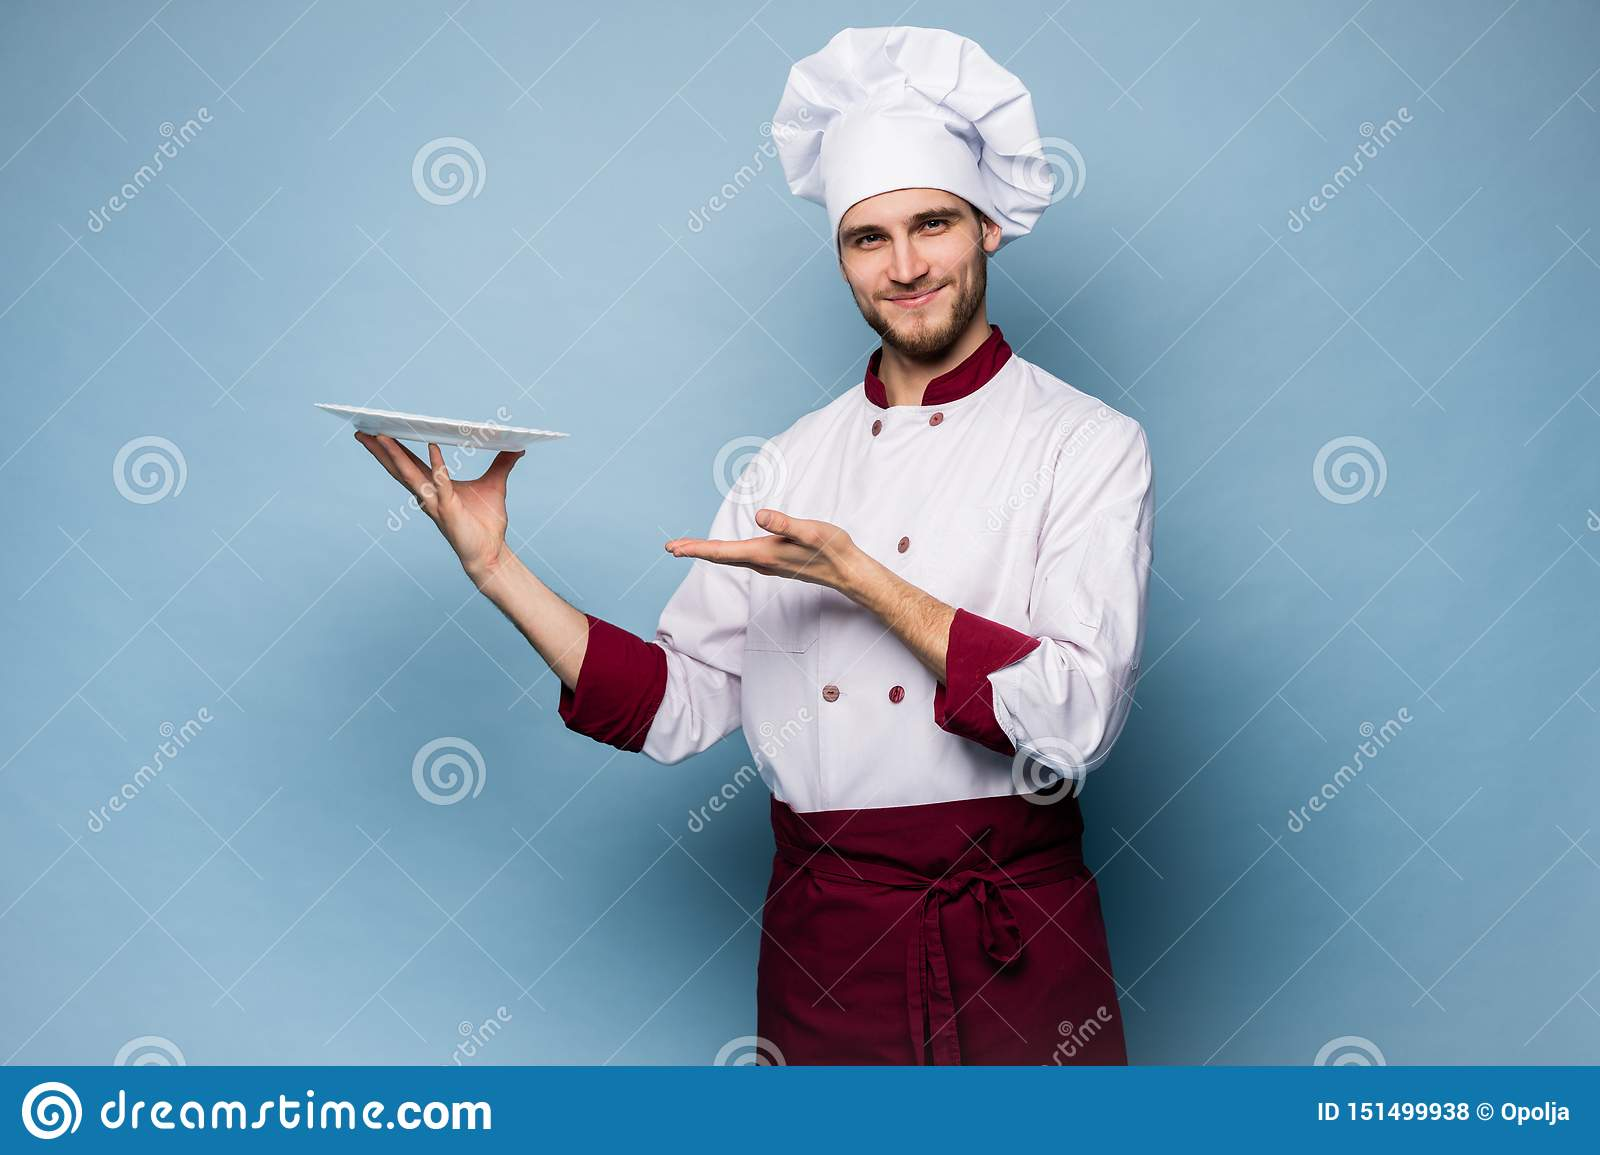 Portrait of a happy male chef cook standing with plate isolated on light blue background.